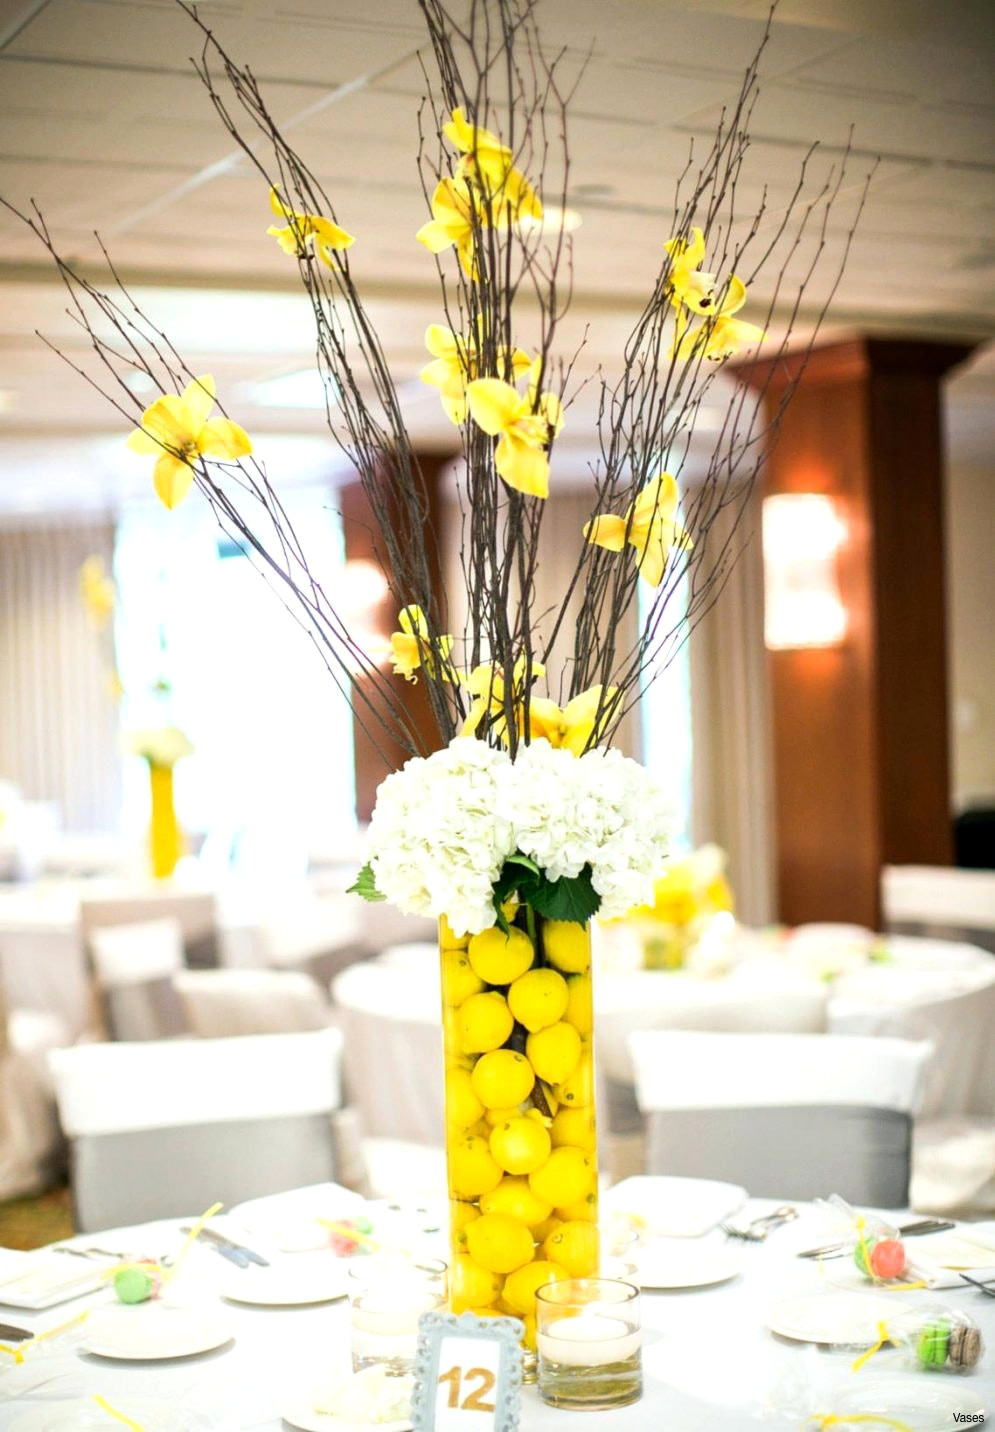 decorating ideas for tall vases of decorations for weddings beautiful living room tall vase decor best inside decorations for weddings fresh diy home decor vaseh vases decorative flower ideas i 0d of decorations